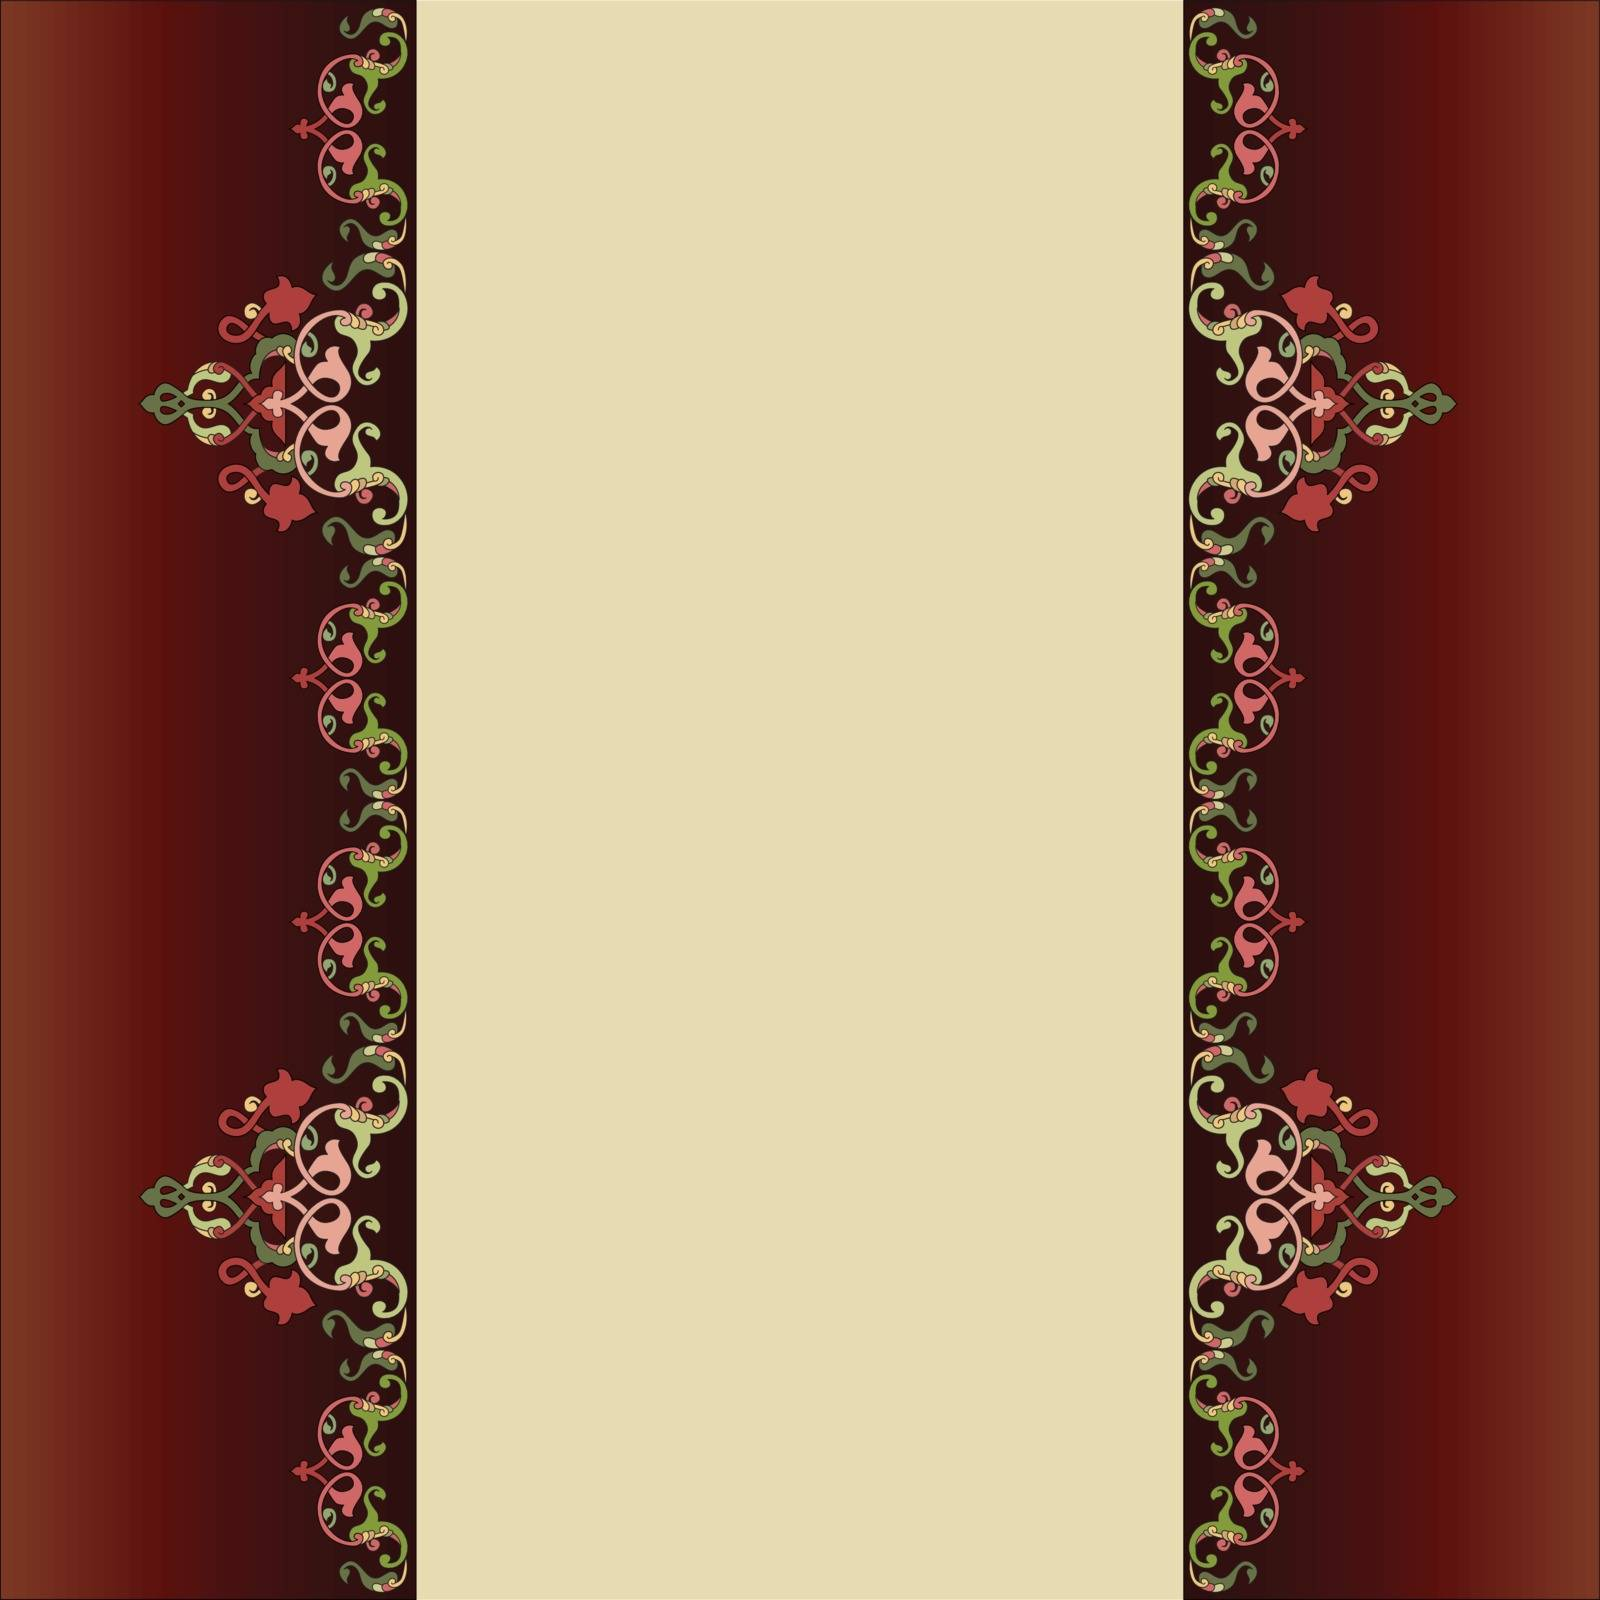 Borders and frames are designed with islamic motifs